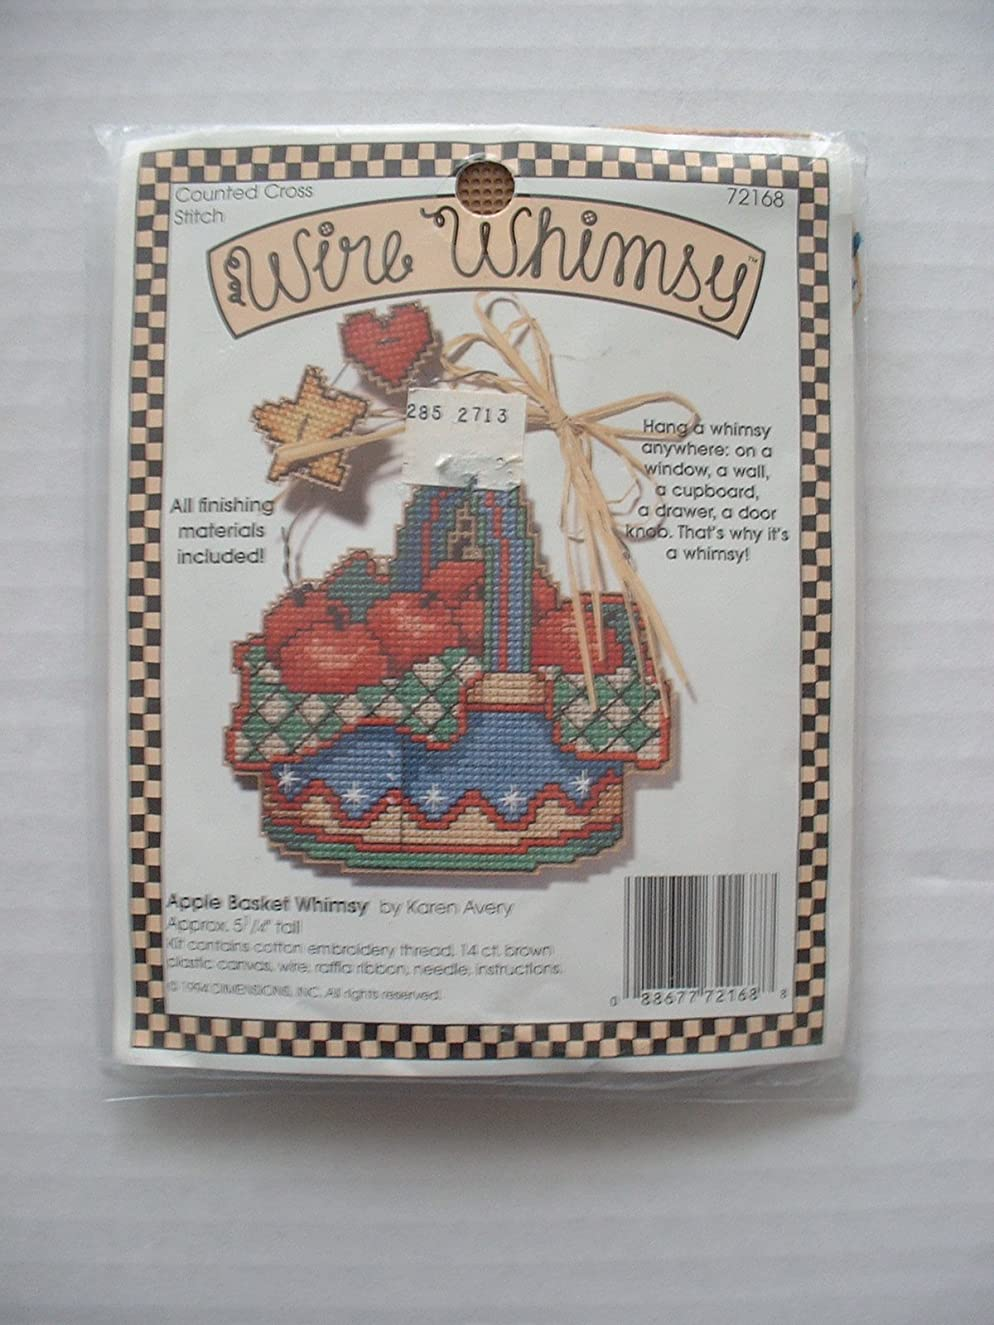 Apple Basket Wire Whimsy by Karen Avery #72168